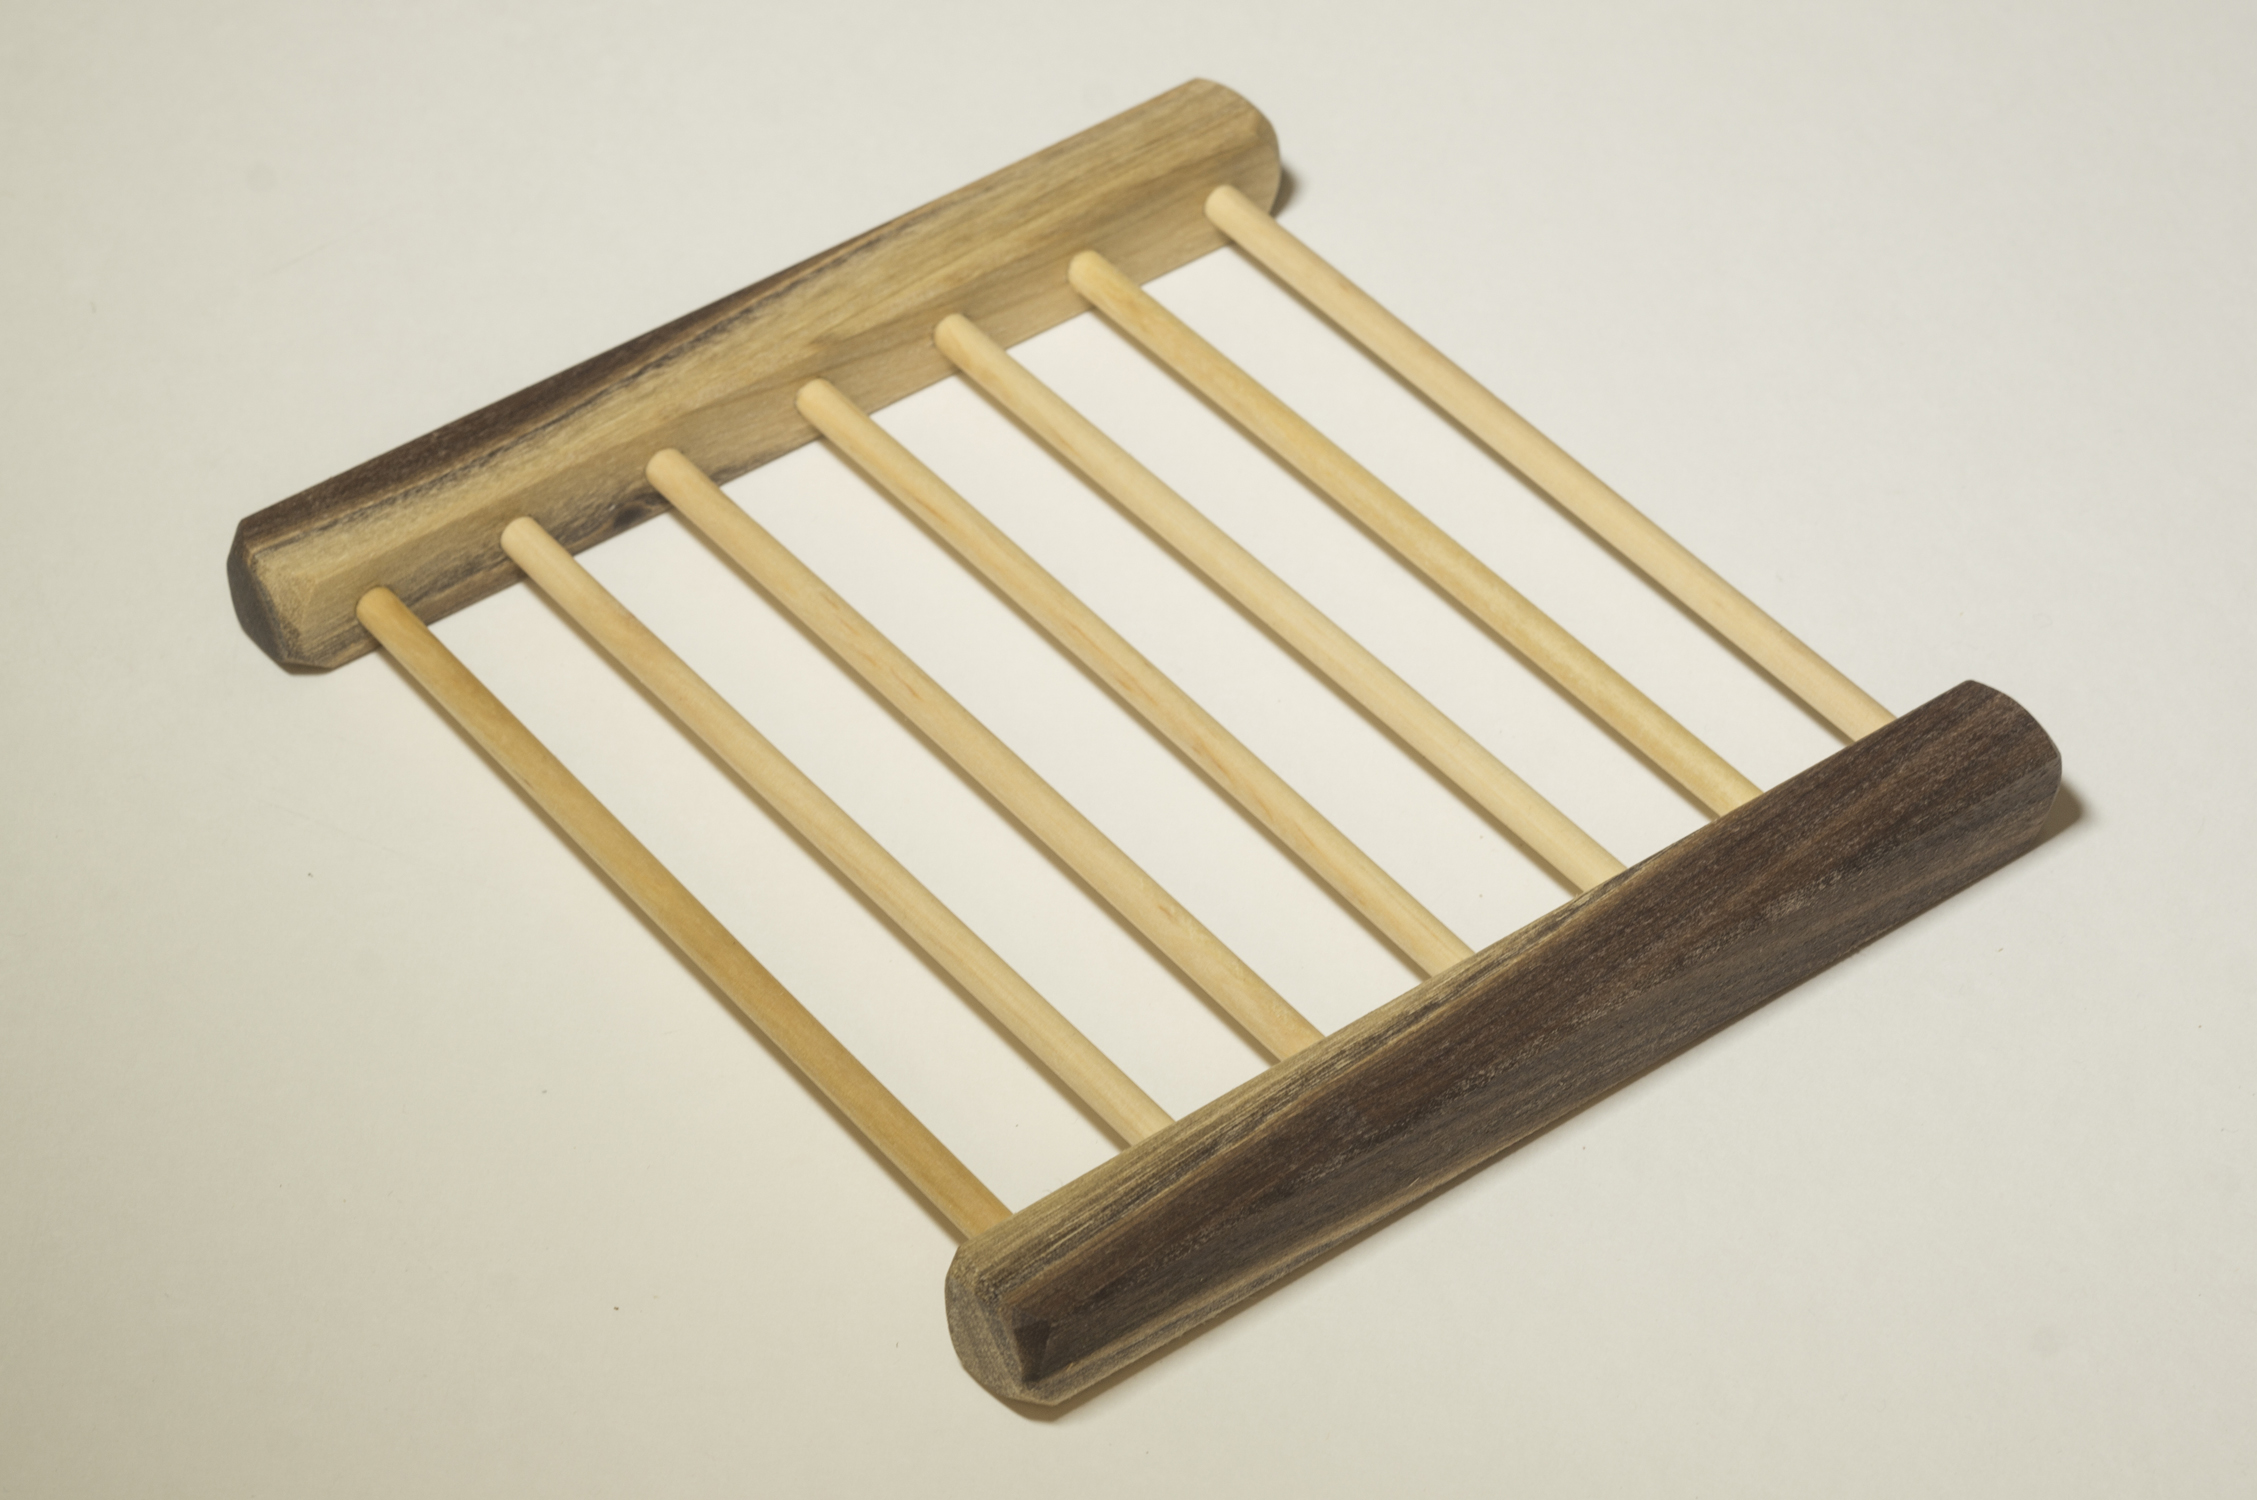 01035 Cooling Rack, Small